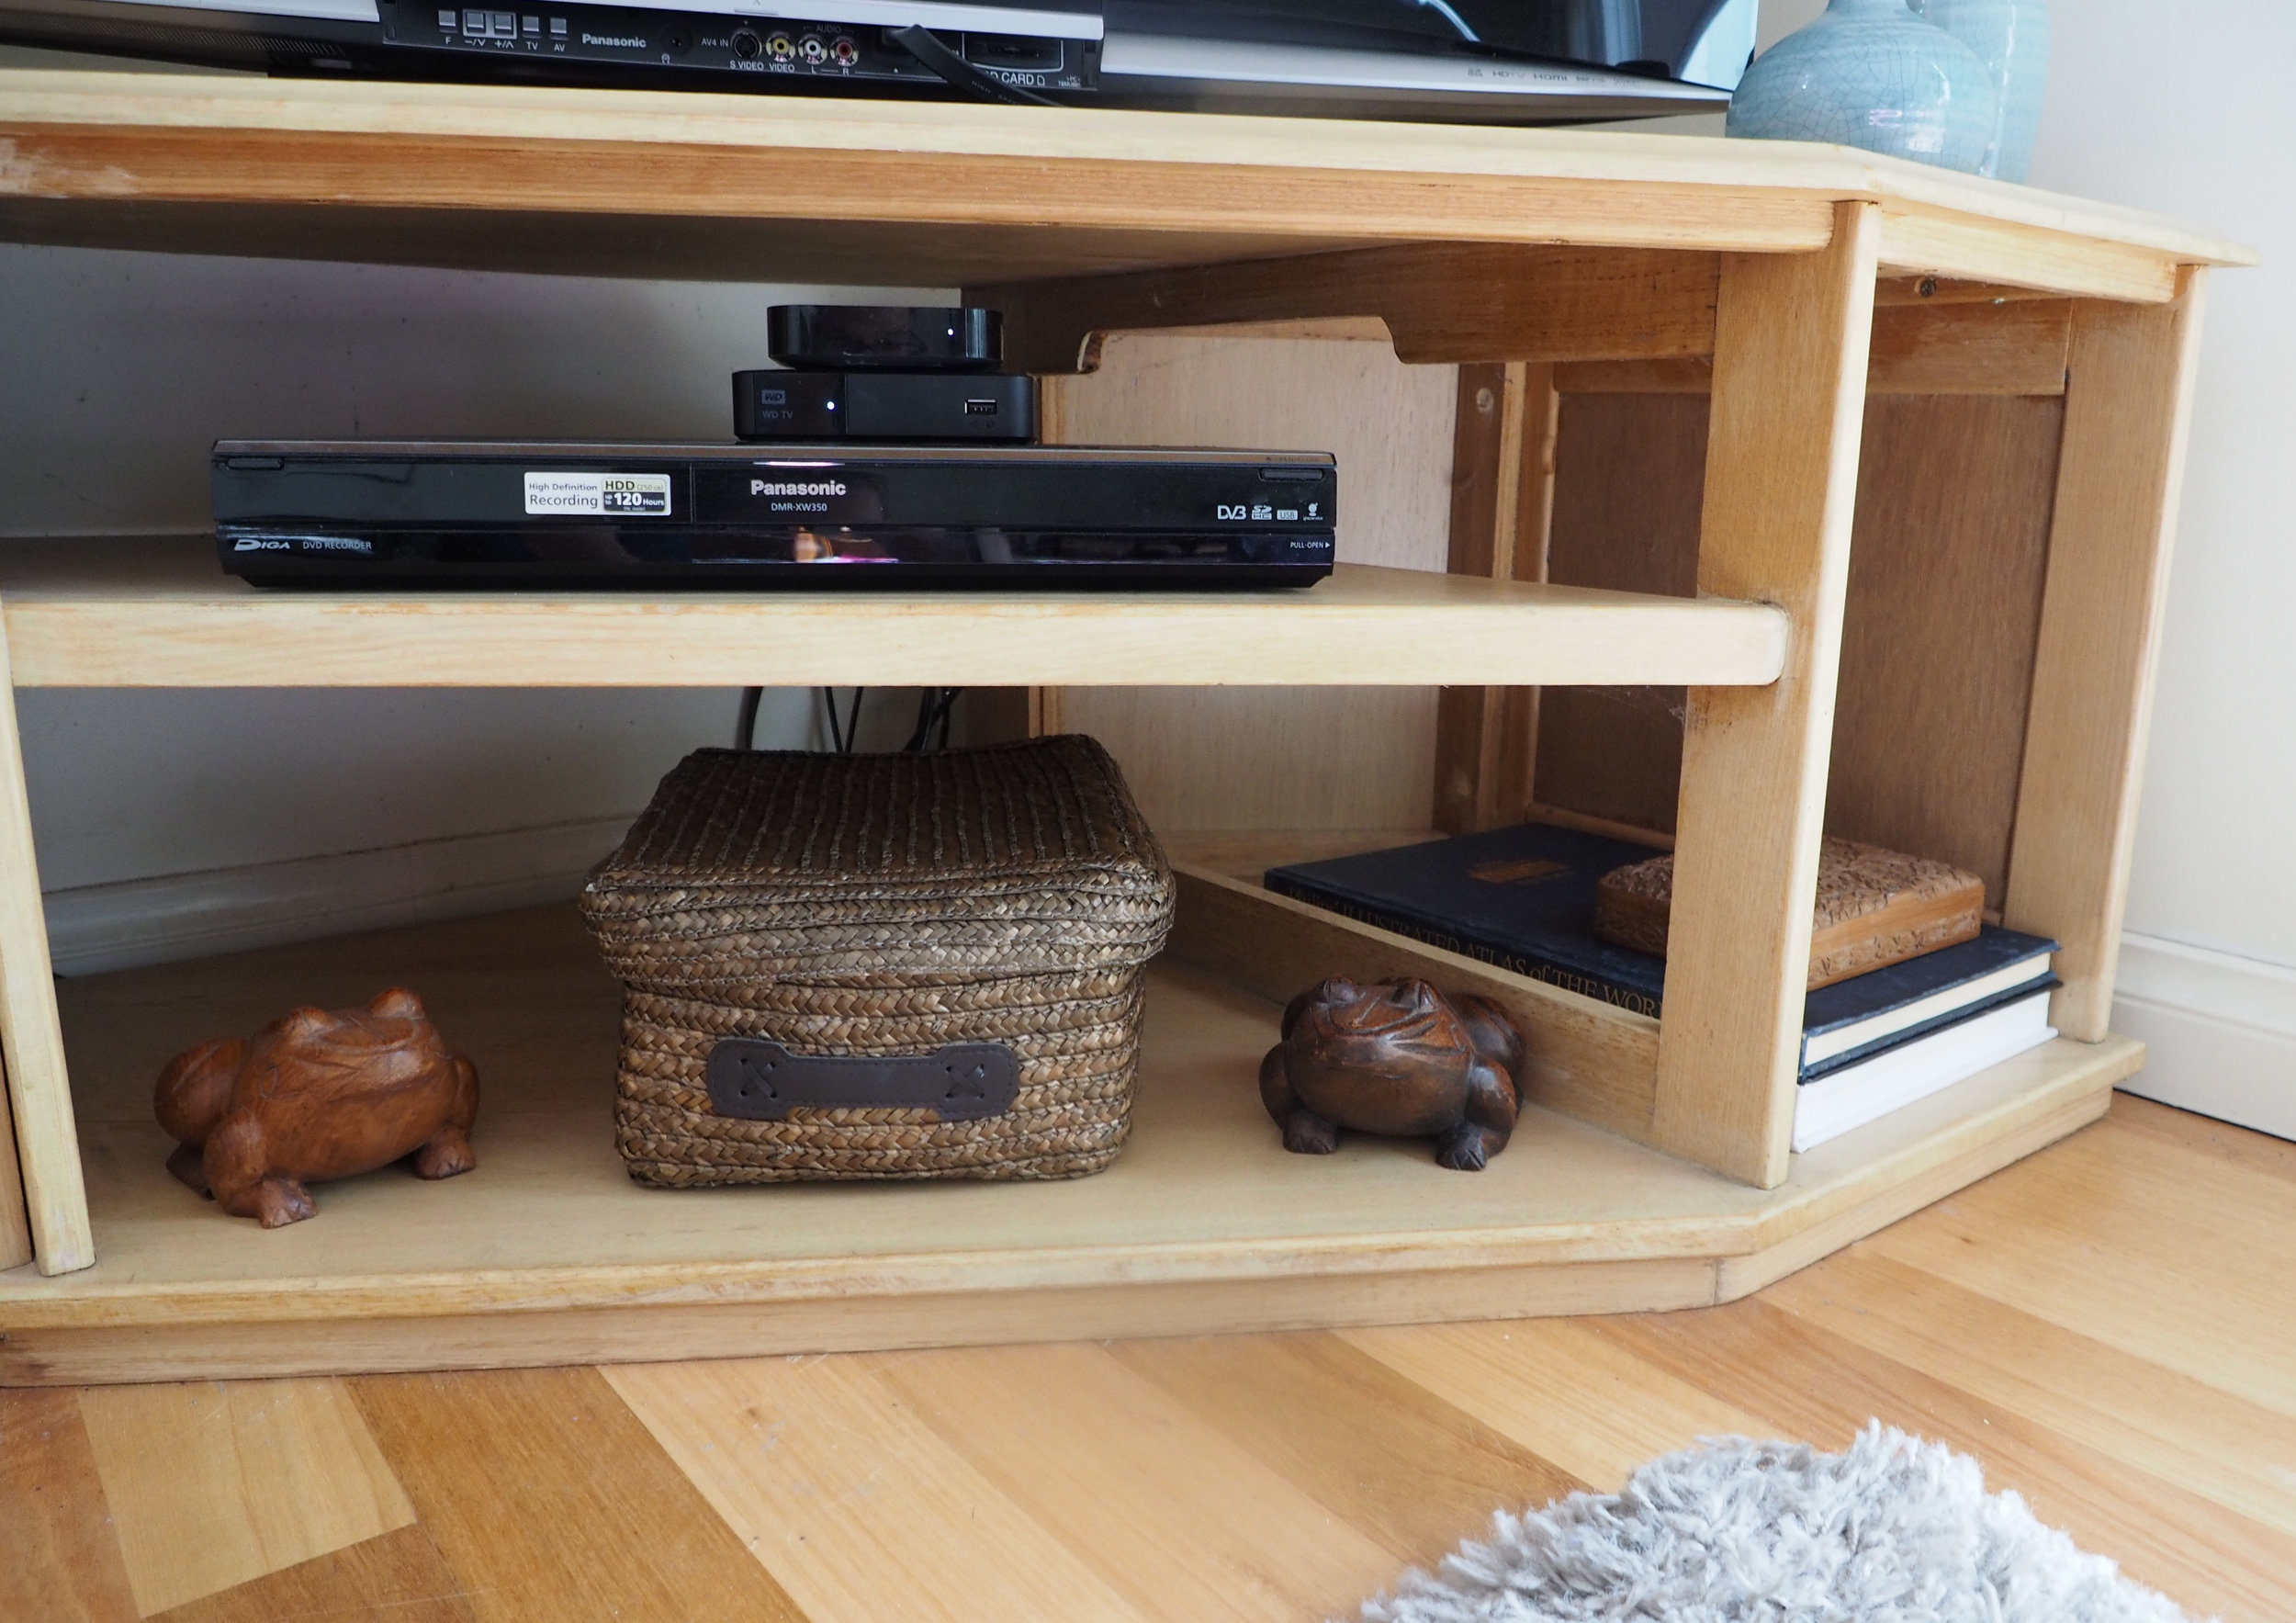 A lidded basket is a great way to conceal clutter - The Organised You